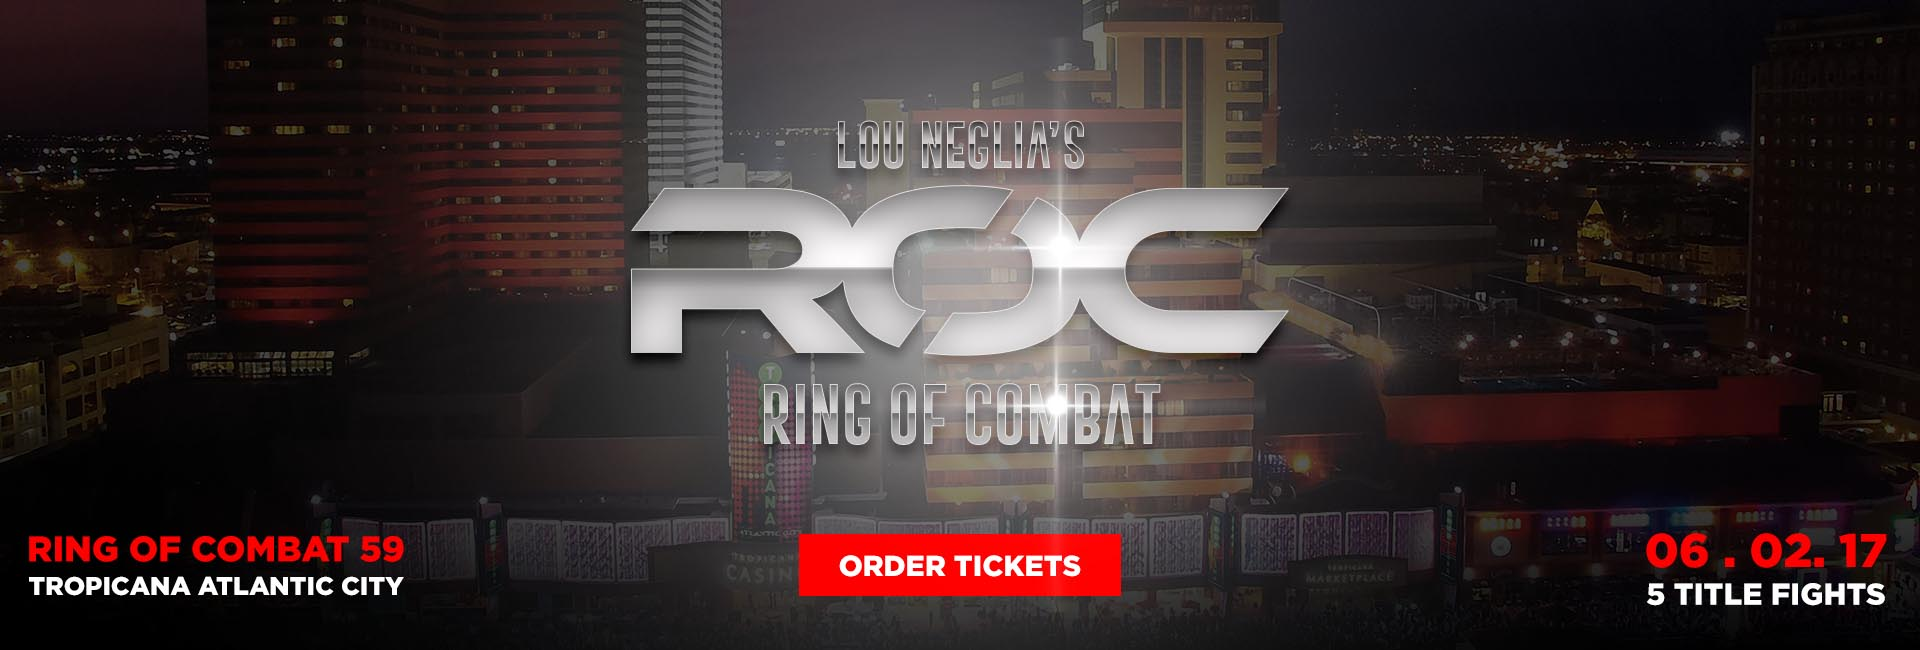 Ring of Combat 59 results